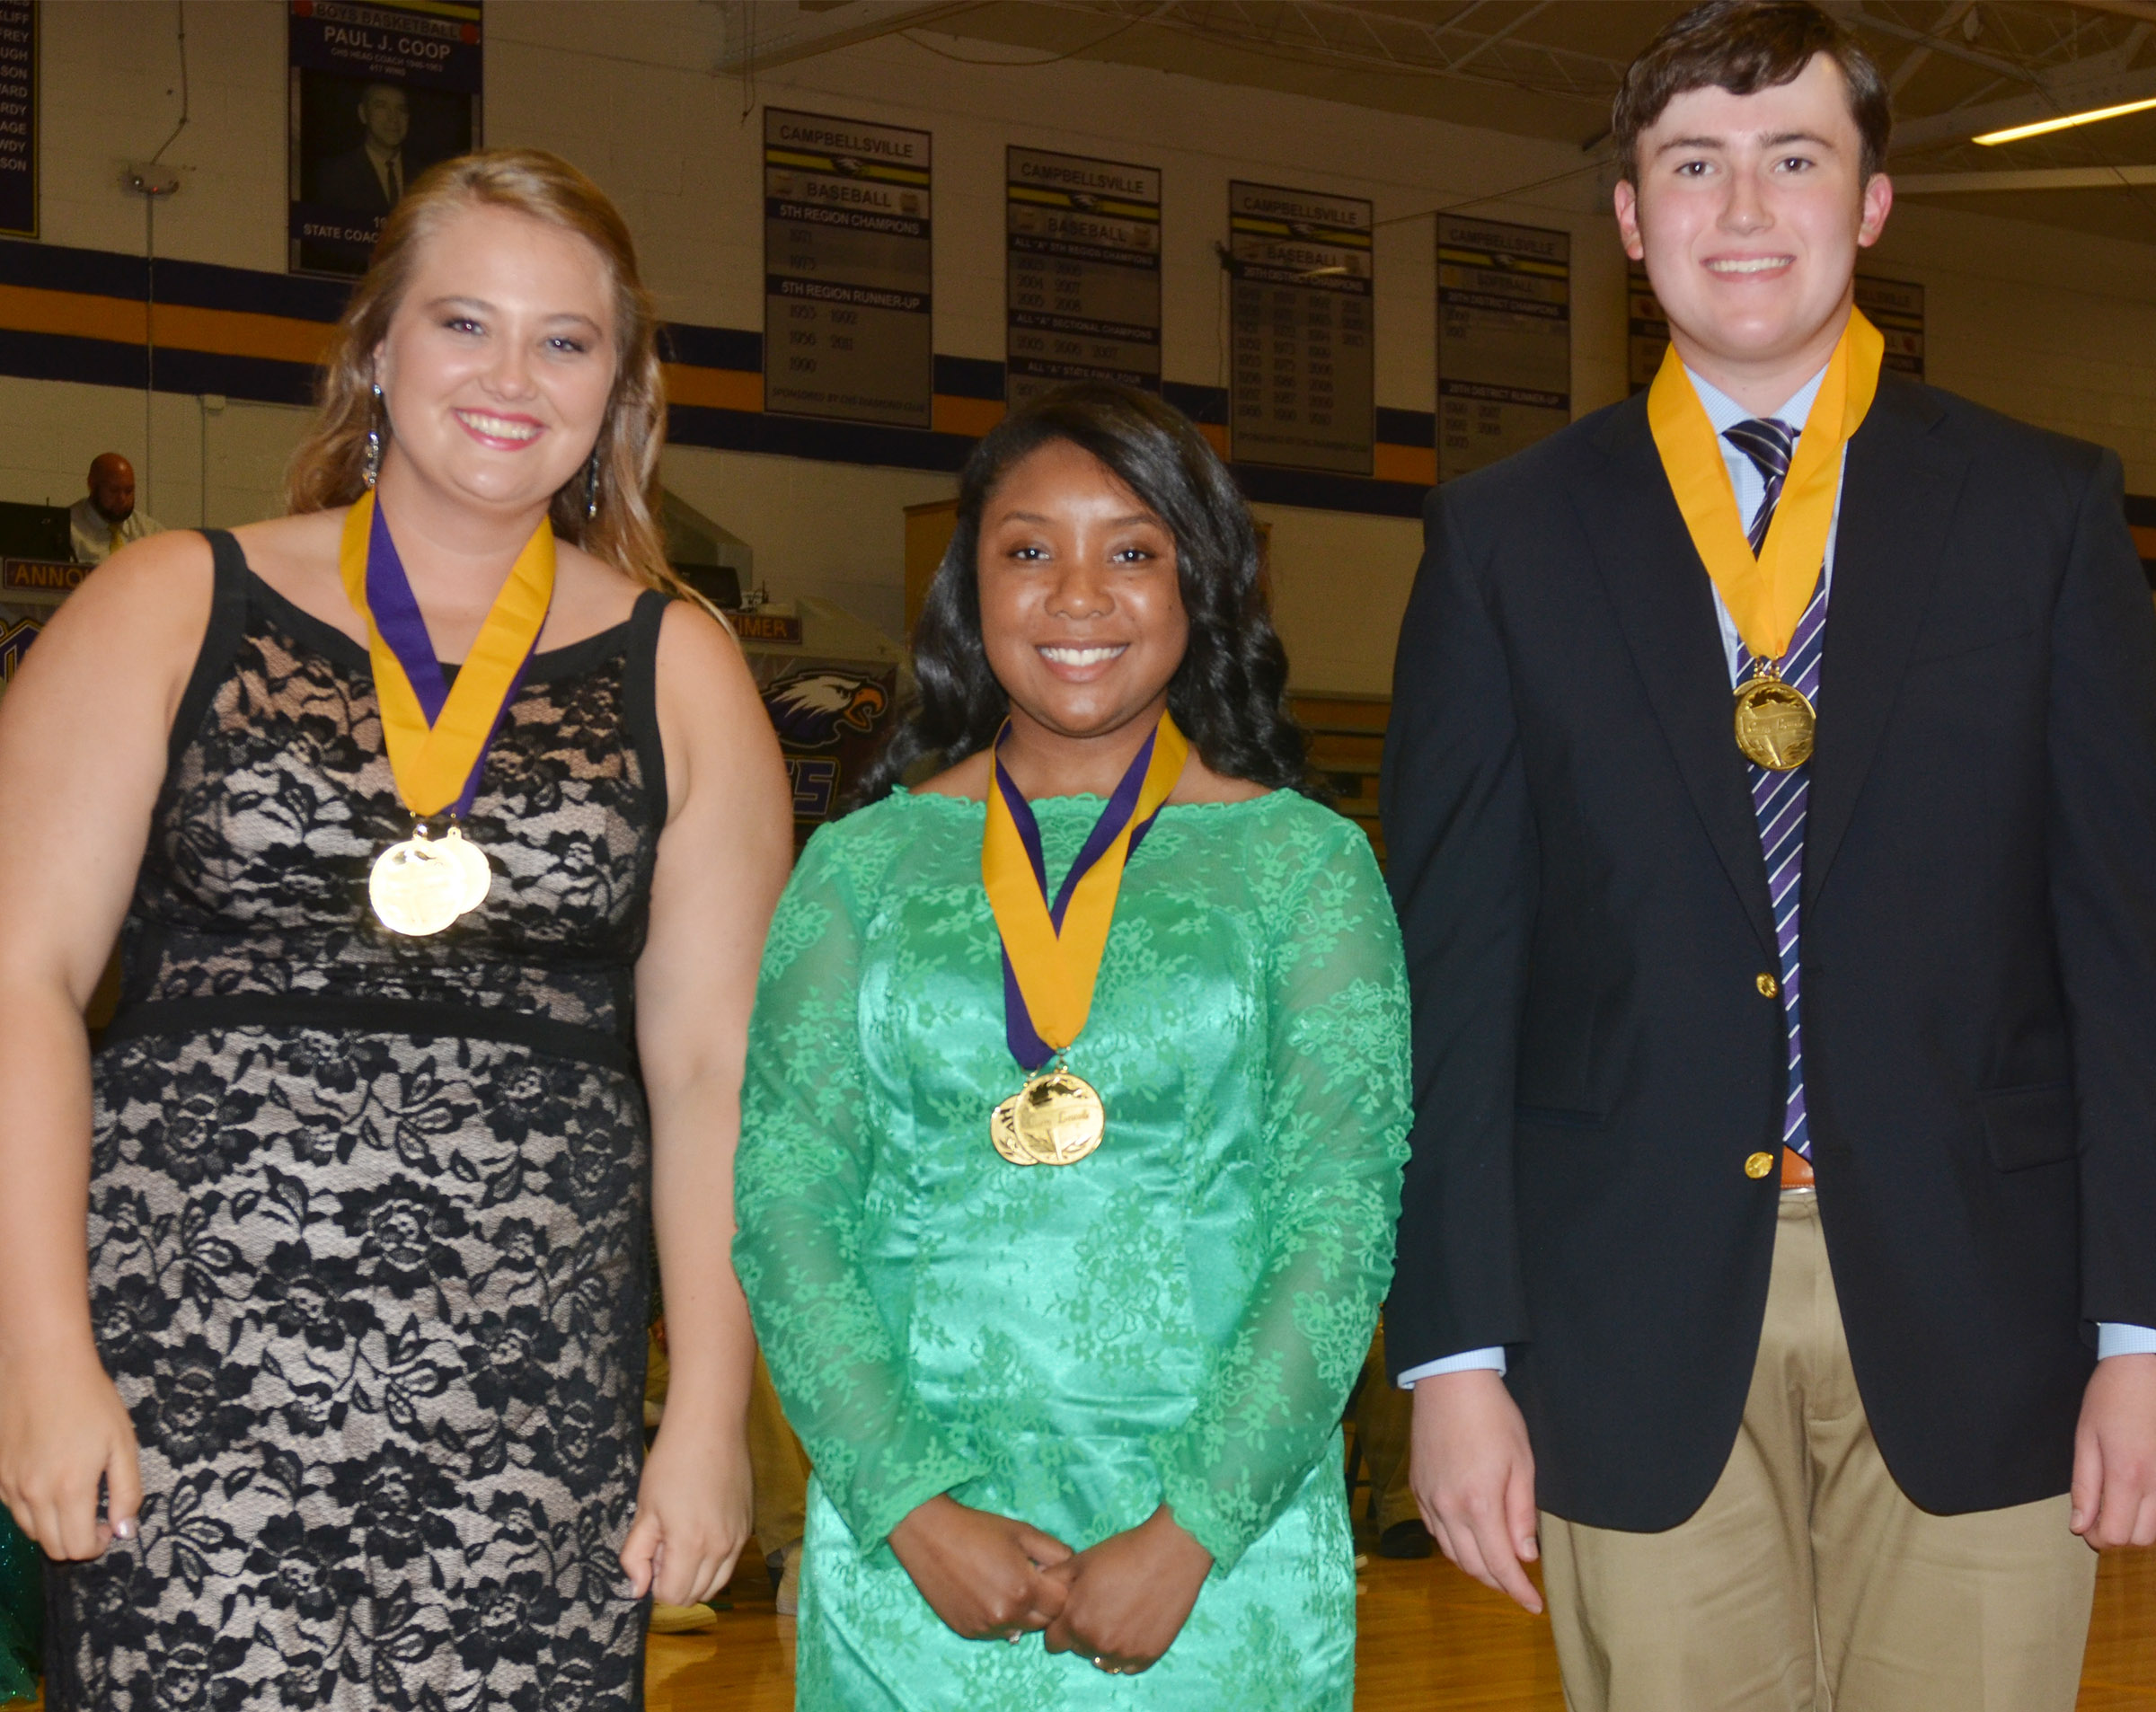 Receiving cum laude honors are, from left, Brenna Wethington, Kayla Atkinson and Zack Settle.